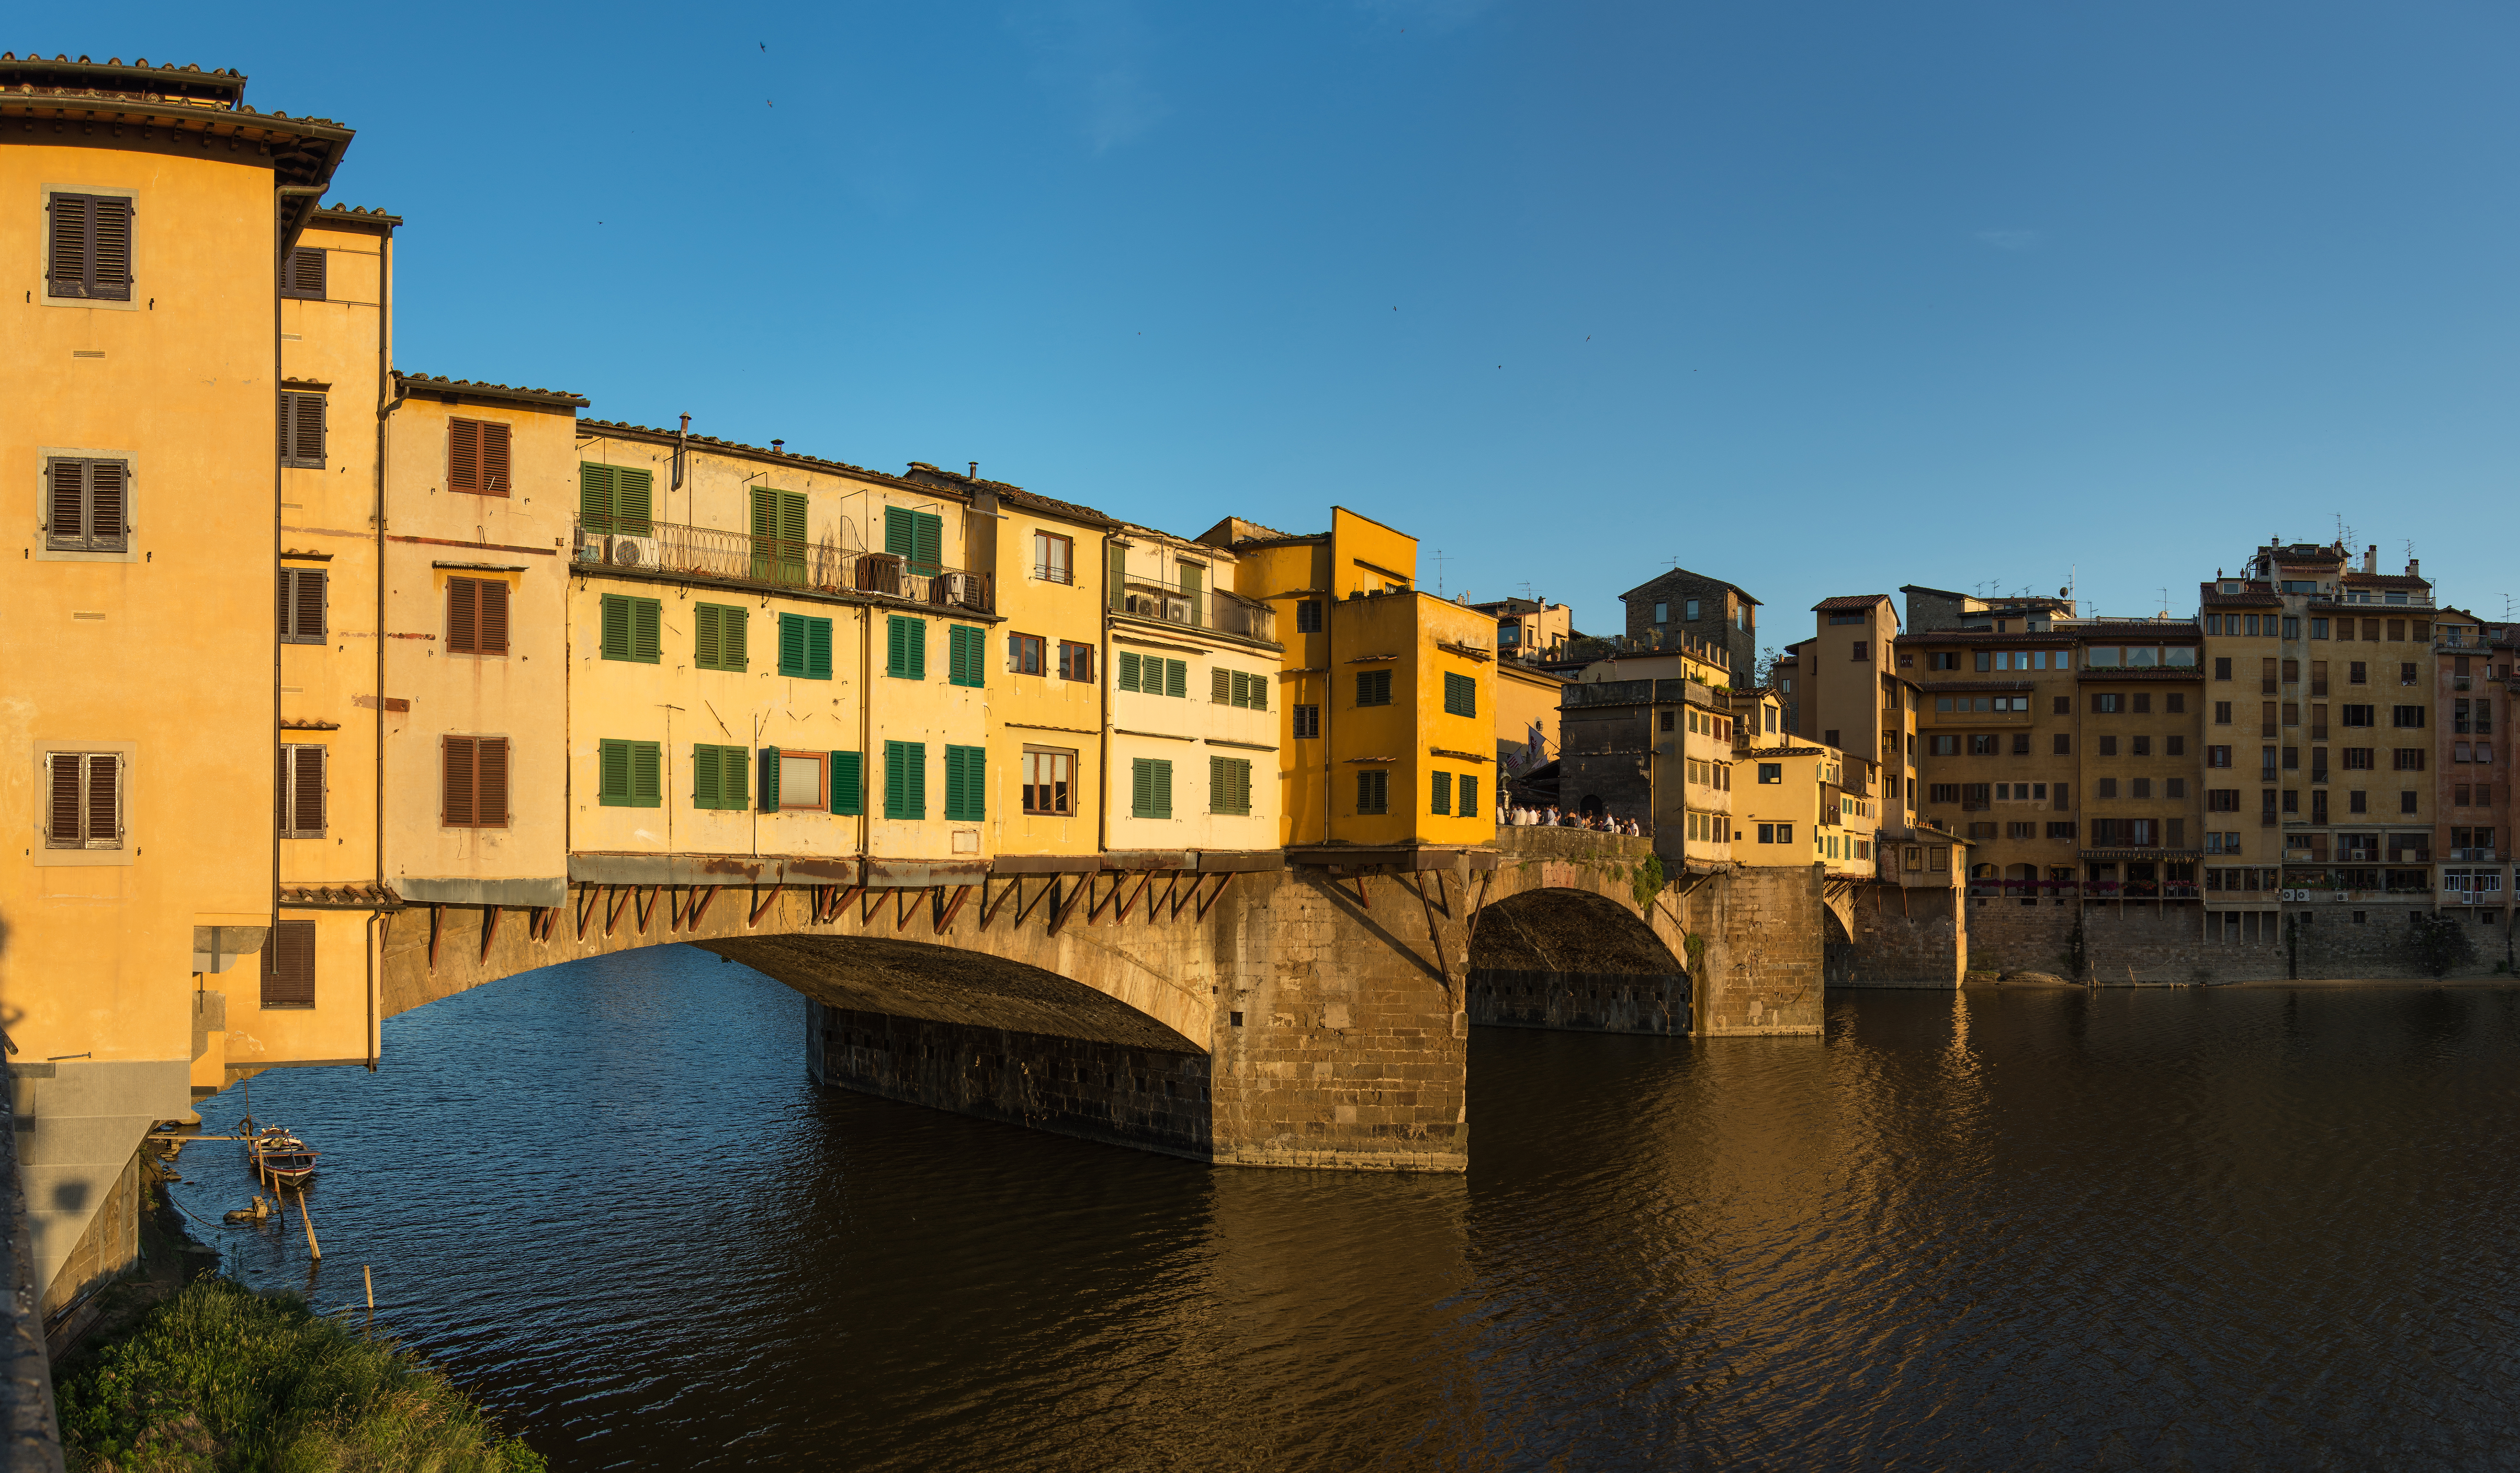 File:Ponte Vecchio - Florence, Italy - June 15, 2013 10.jpg - Wikimedia Commons